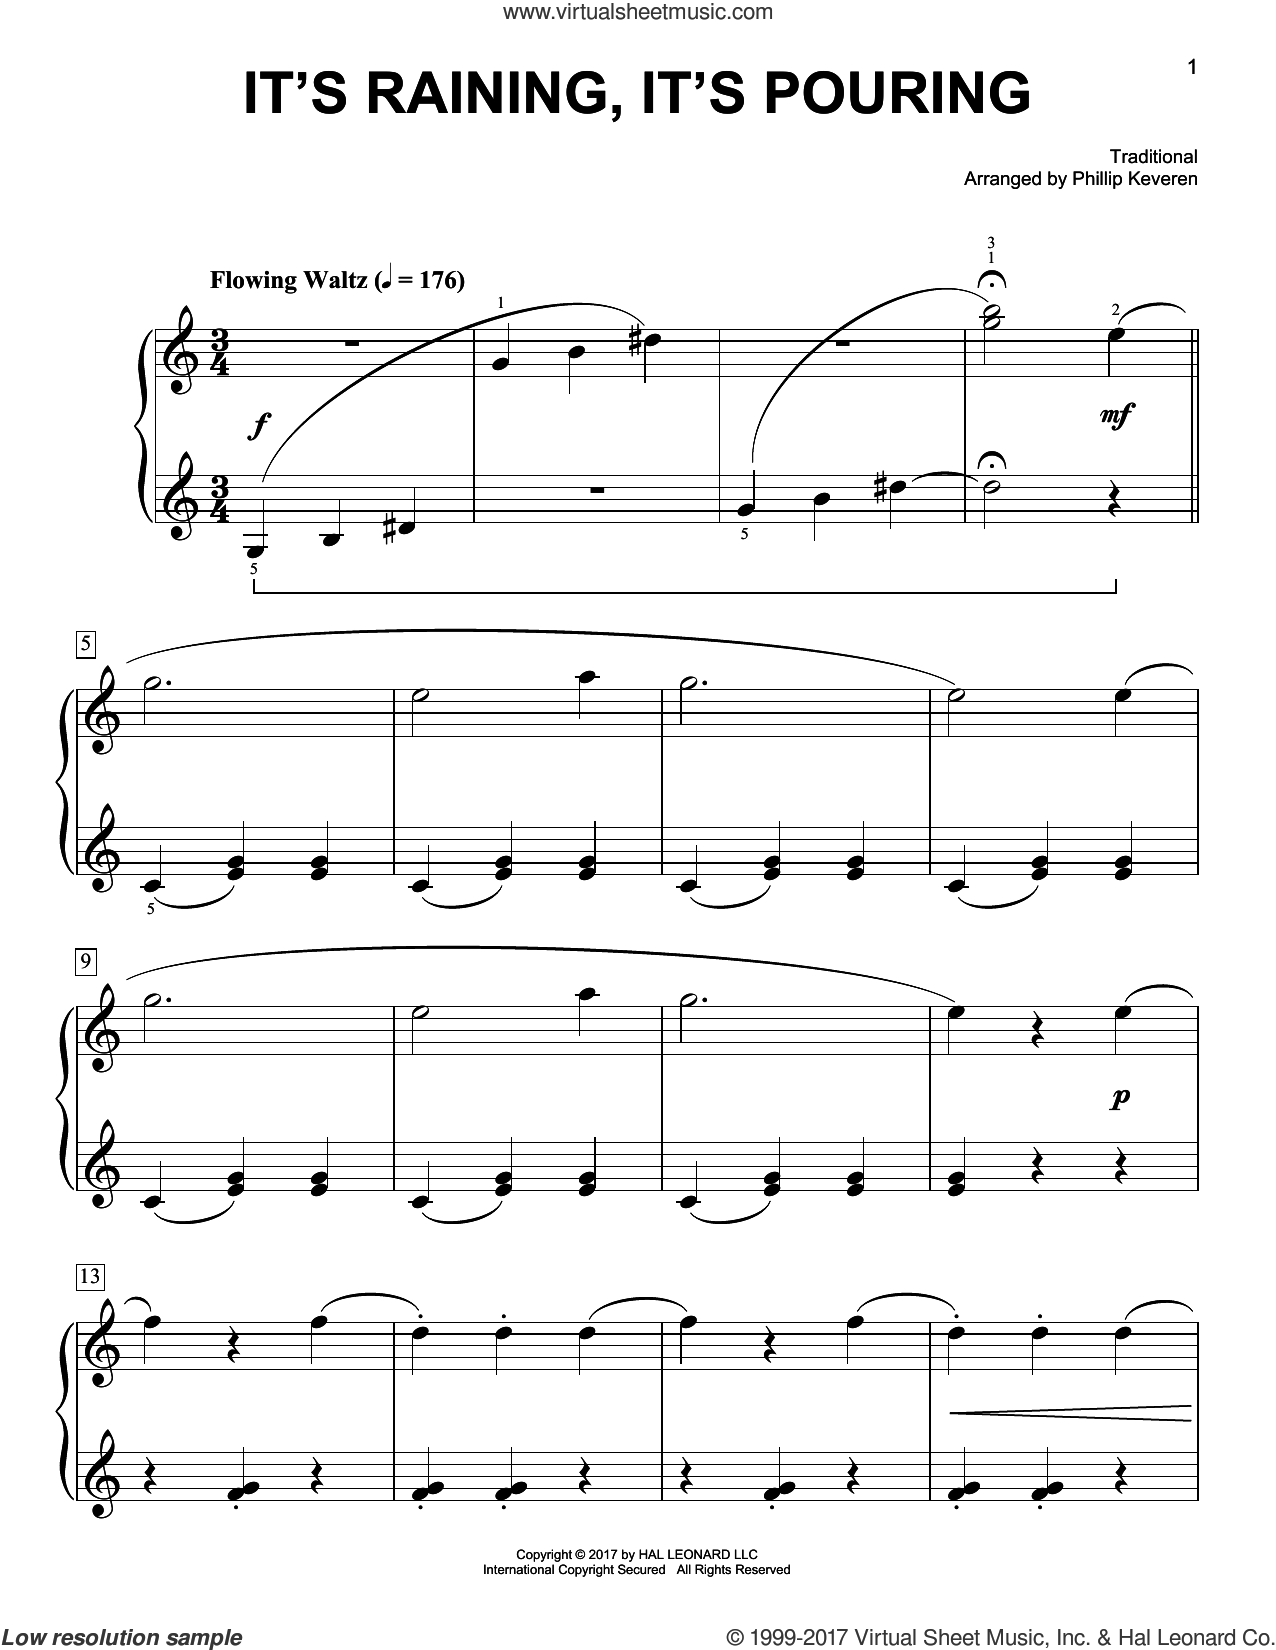 It's Raining, It's Pouring sheet music for piano solo by Phillip Keveren and Miscellaneous, easy skill level